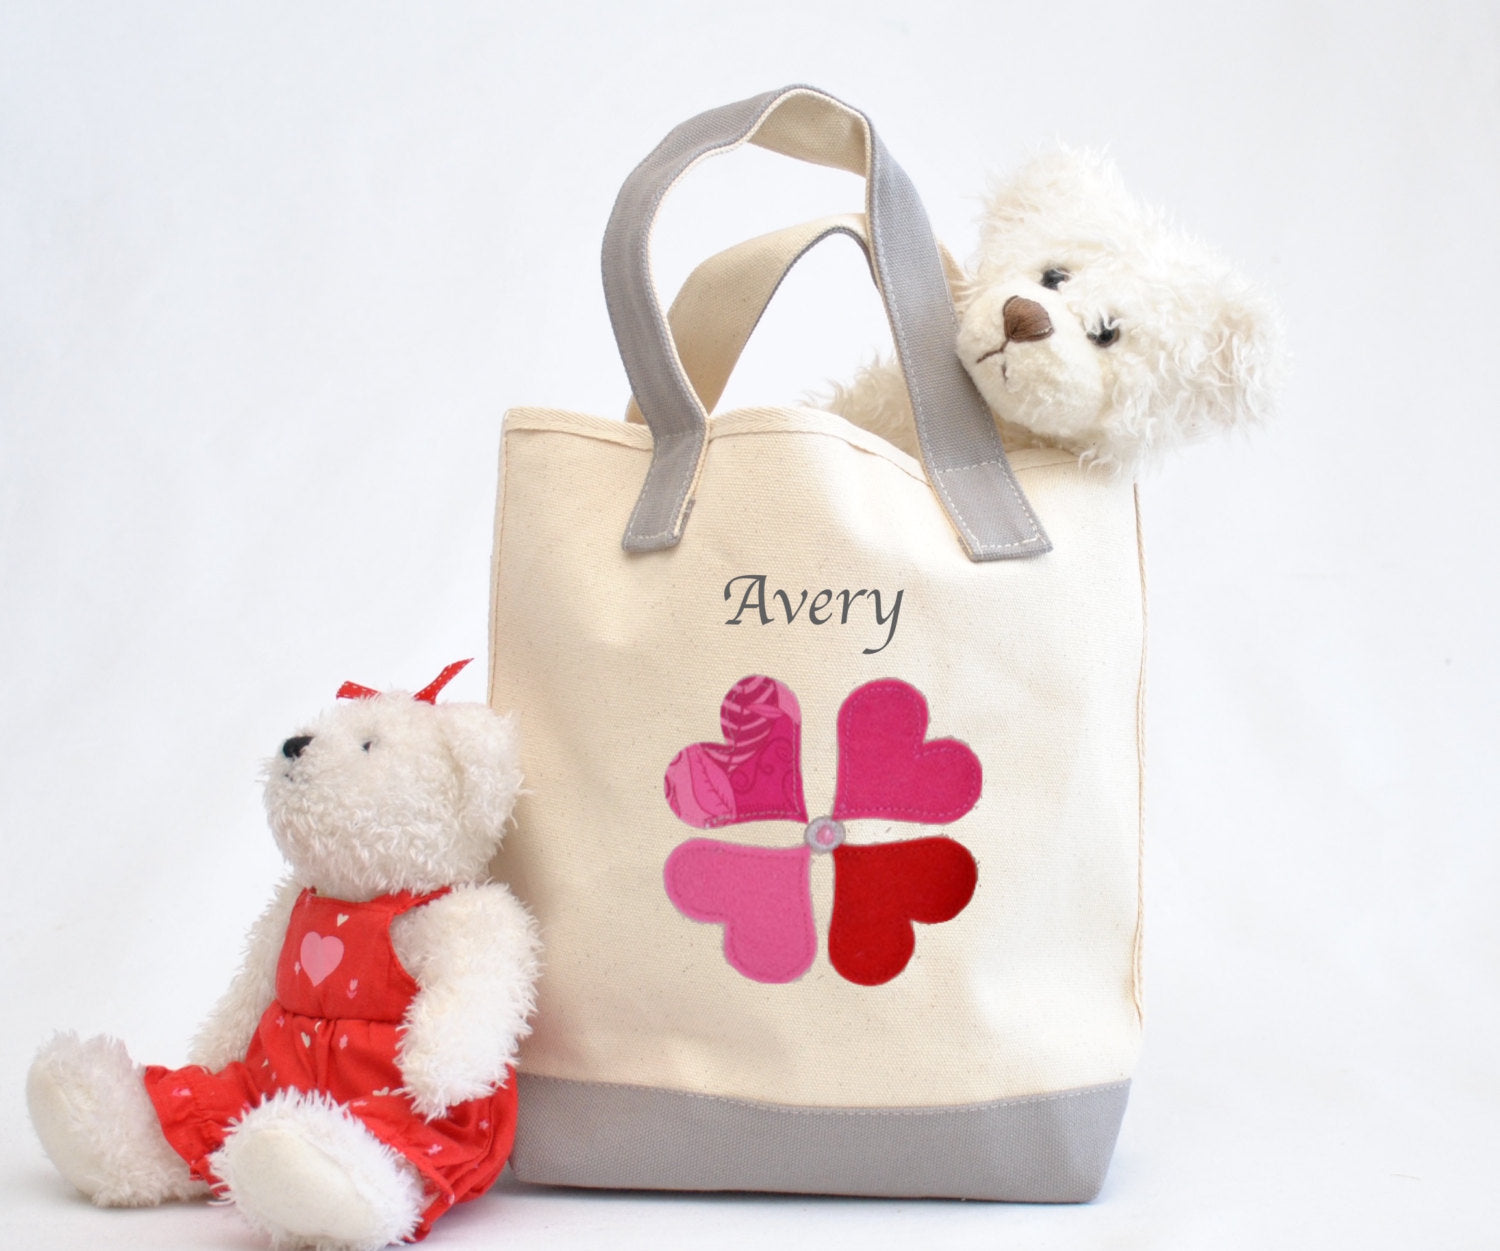 Heart Flower Tote bag, Valentine gift tote bag